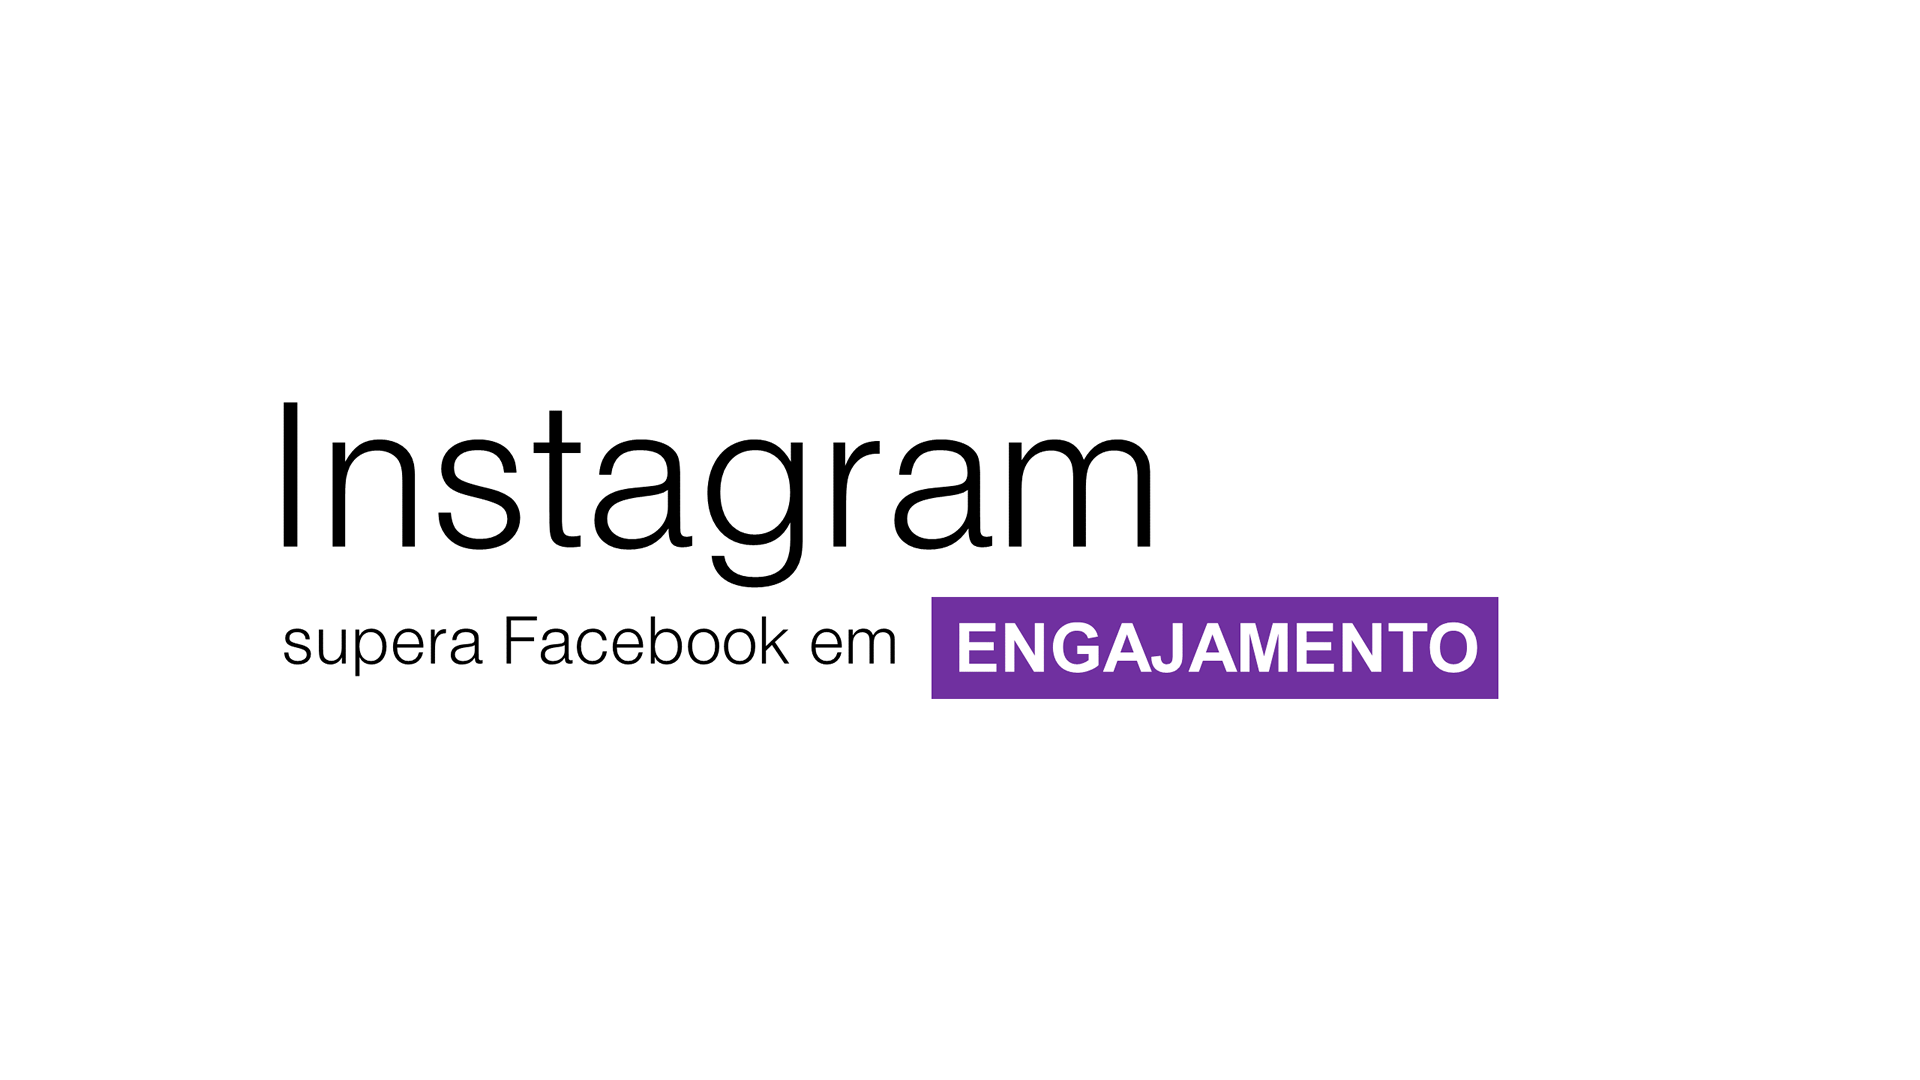 Instagram supera Facebook em engajamento